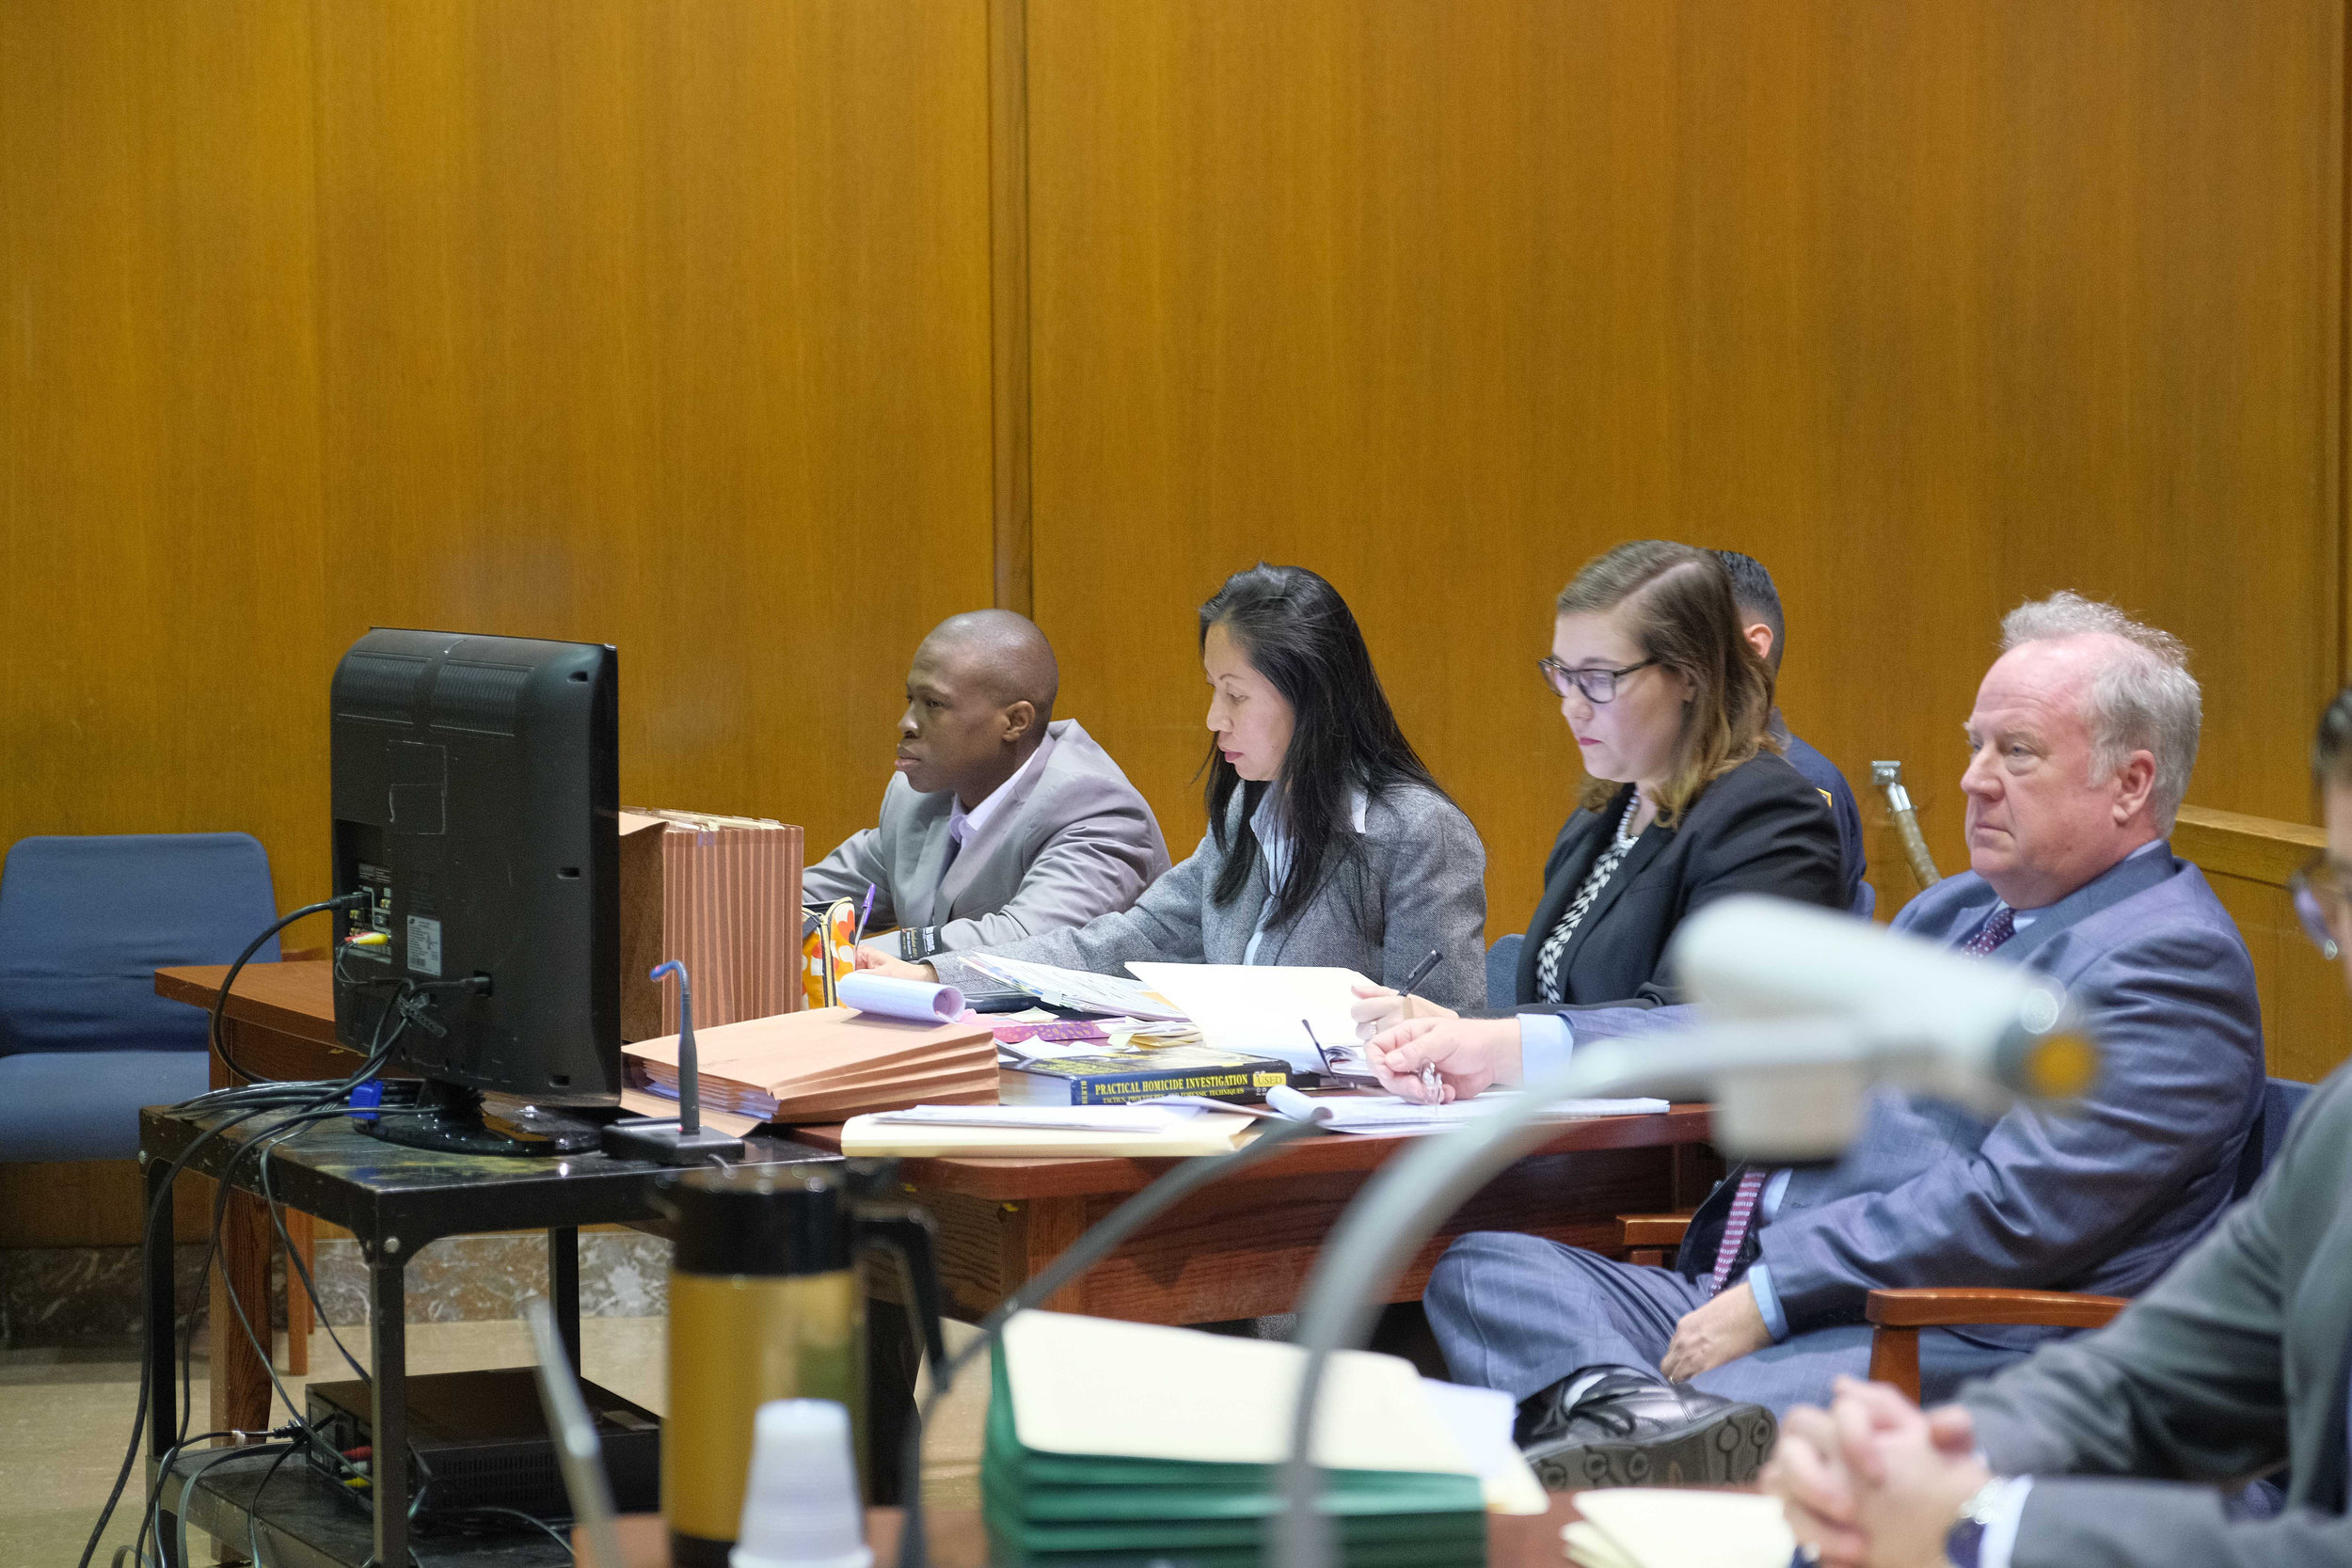 Chanel Lewis (far left) on trial for the murder of Karina Vetrano. Lewis is seated with defense team Jenny Cheung (middle left), Julia Burke (middle right) and Robert Moeller (right). Pool photo by Curtis Means.